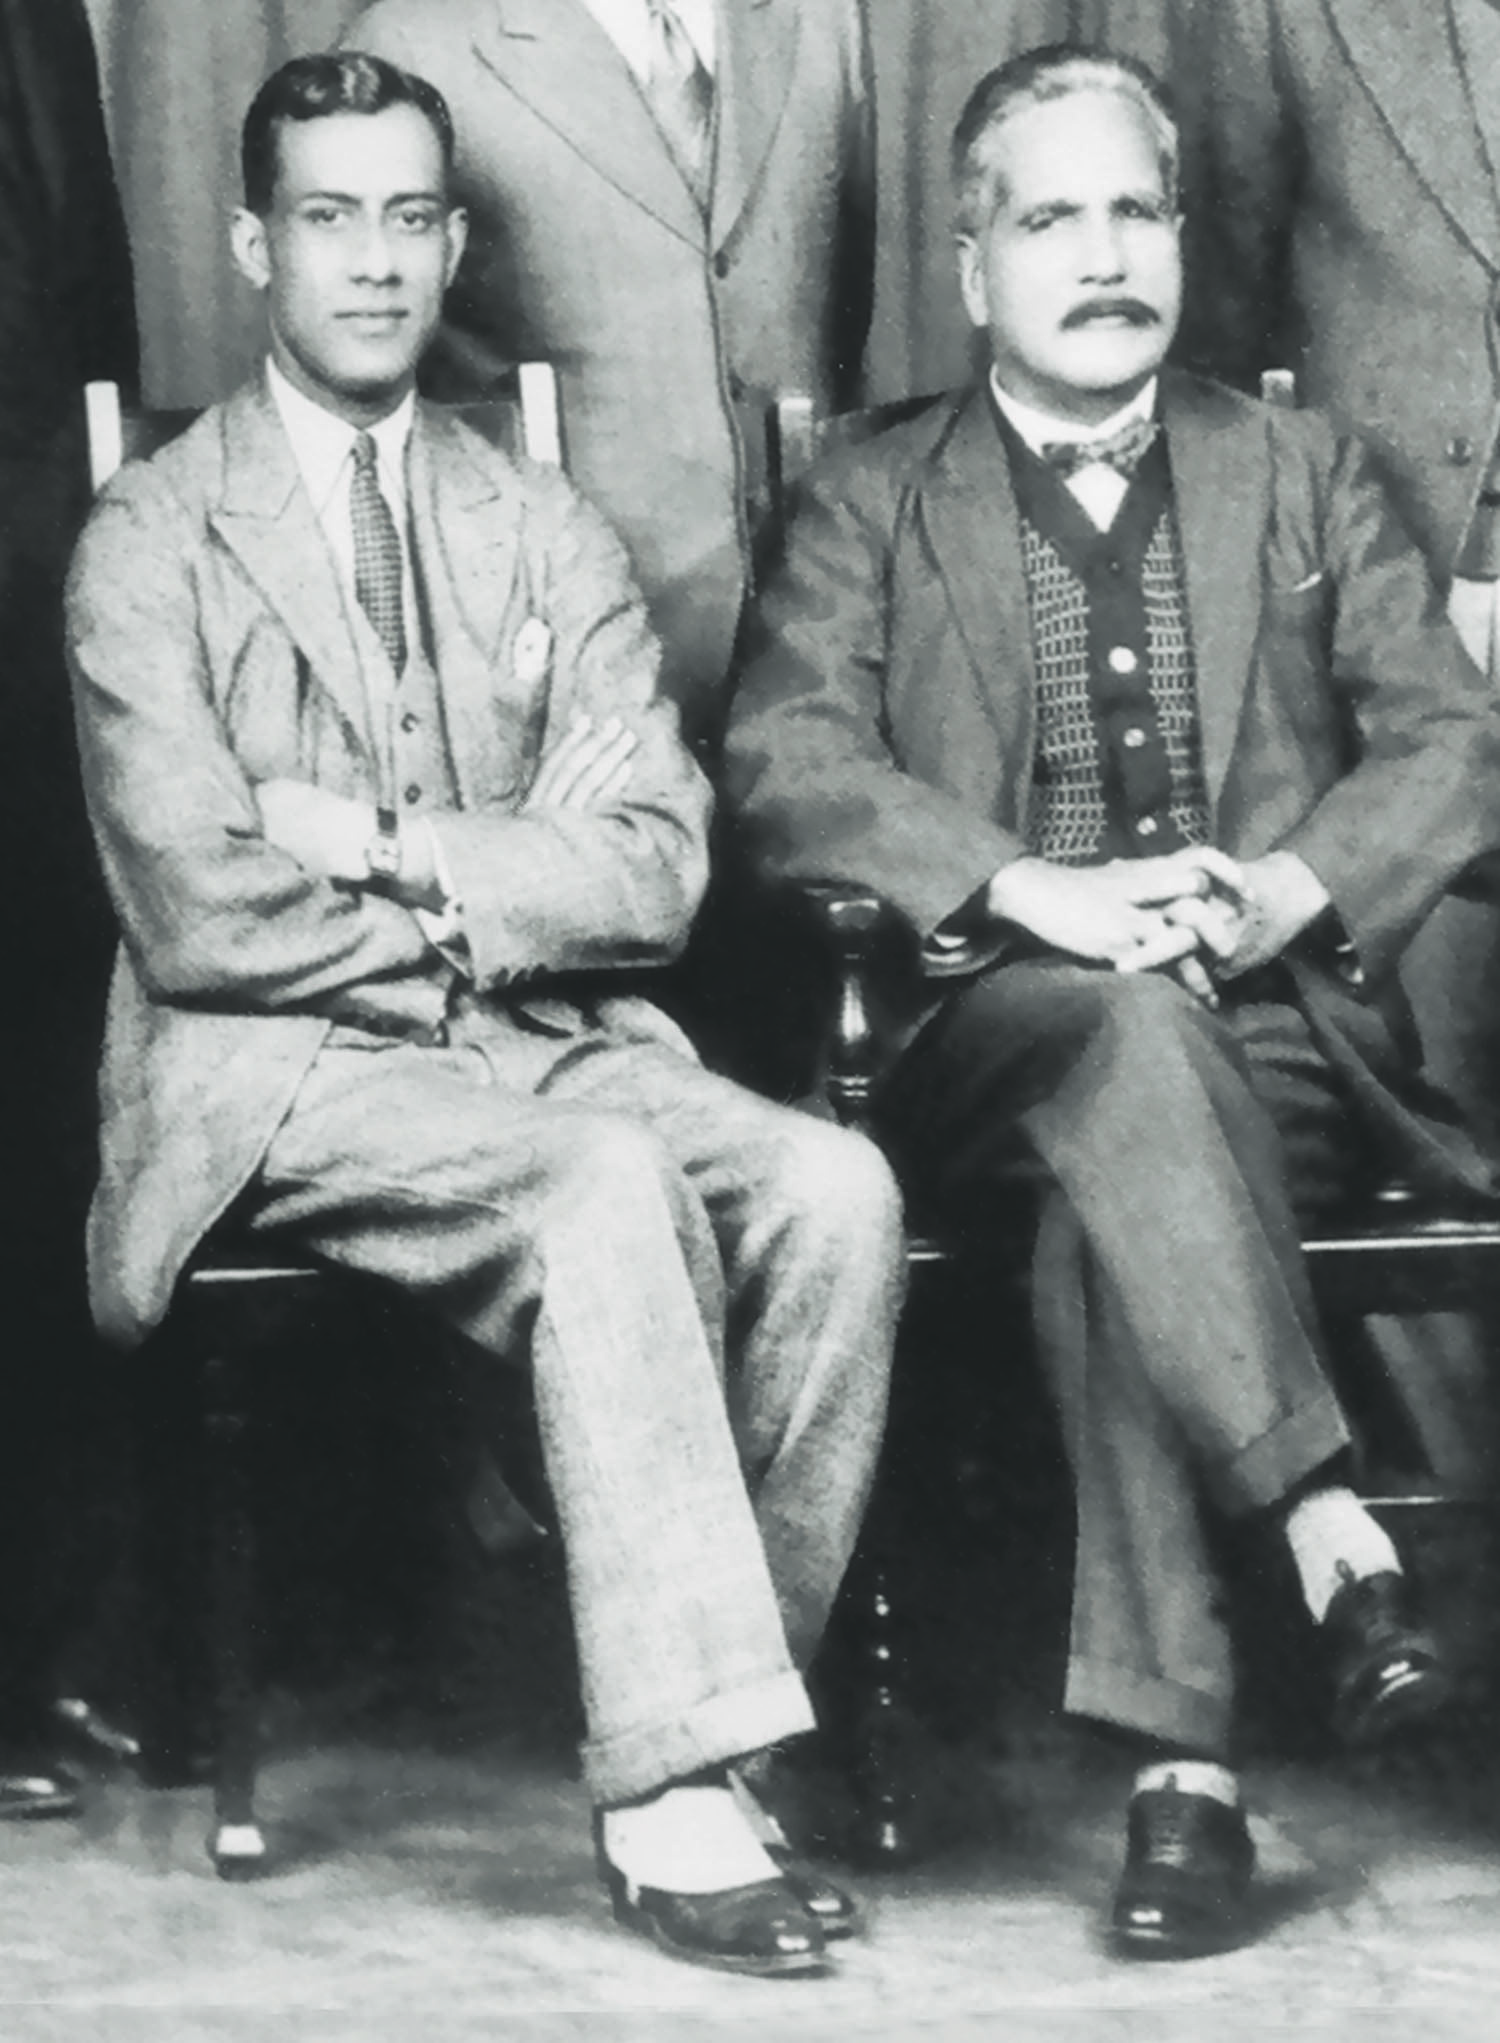 Chaudry Rehmat Ali (left) and Allama Iqbal in Cambridge in 1932 when the latter was in England to attend the Third Round Table Conference. Chaudhry Rehmat Ali coined the name Pakistan that stirred the imagination of millions of Muslims in undivided India.  Photo: The Allama Iqbal Collection.